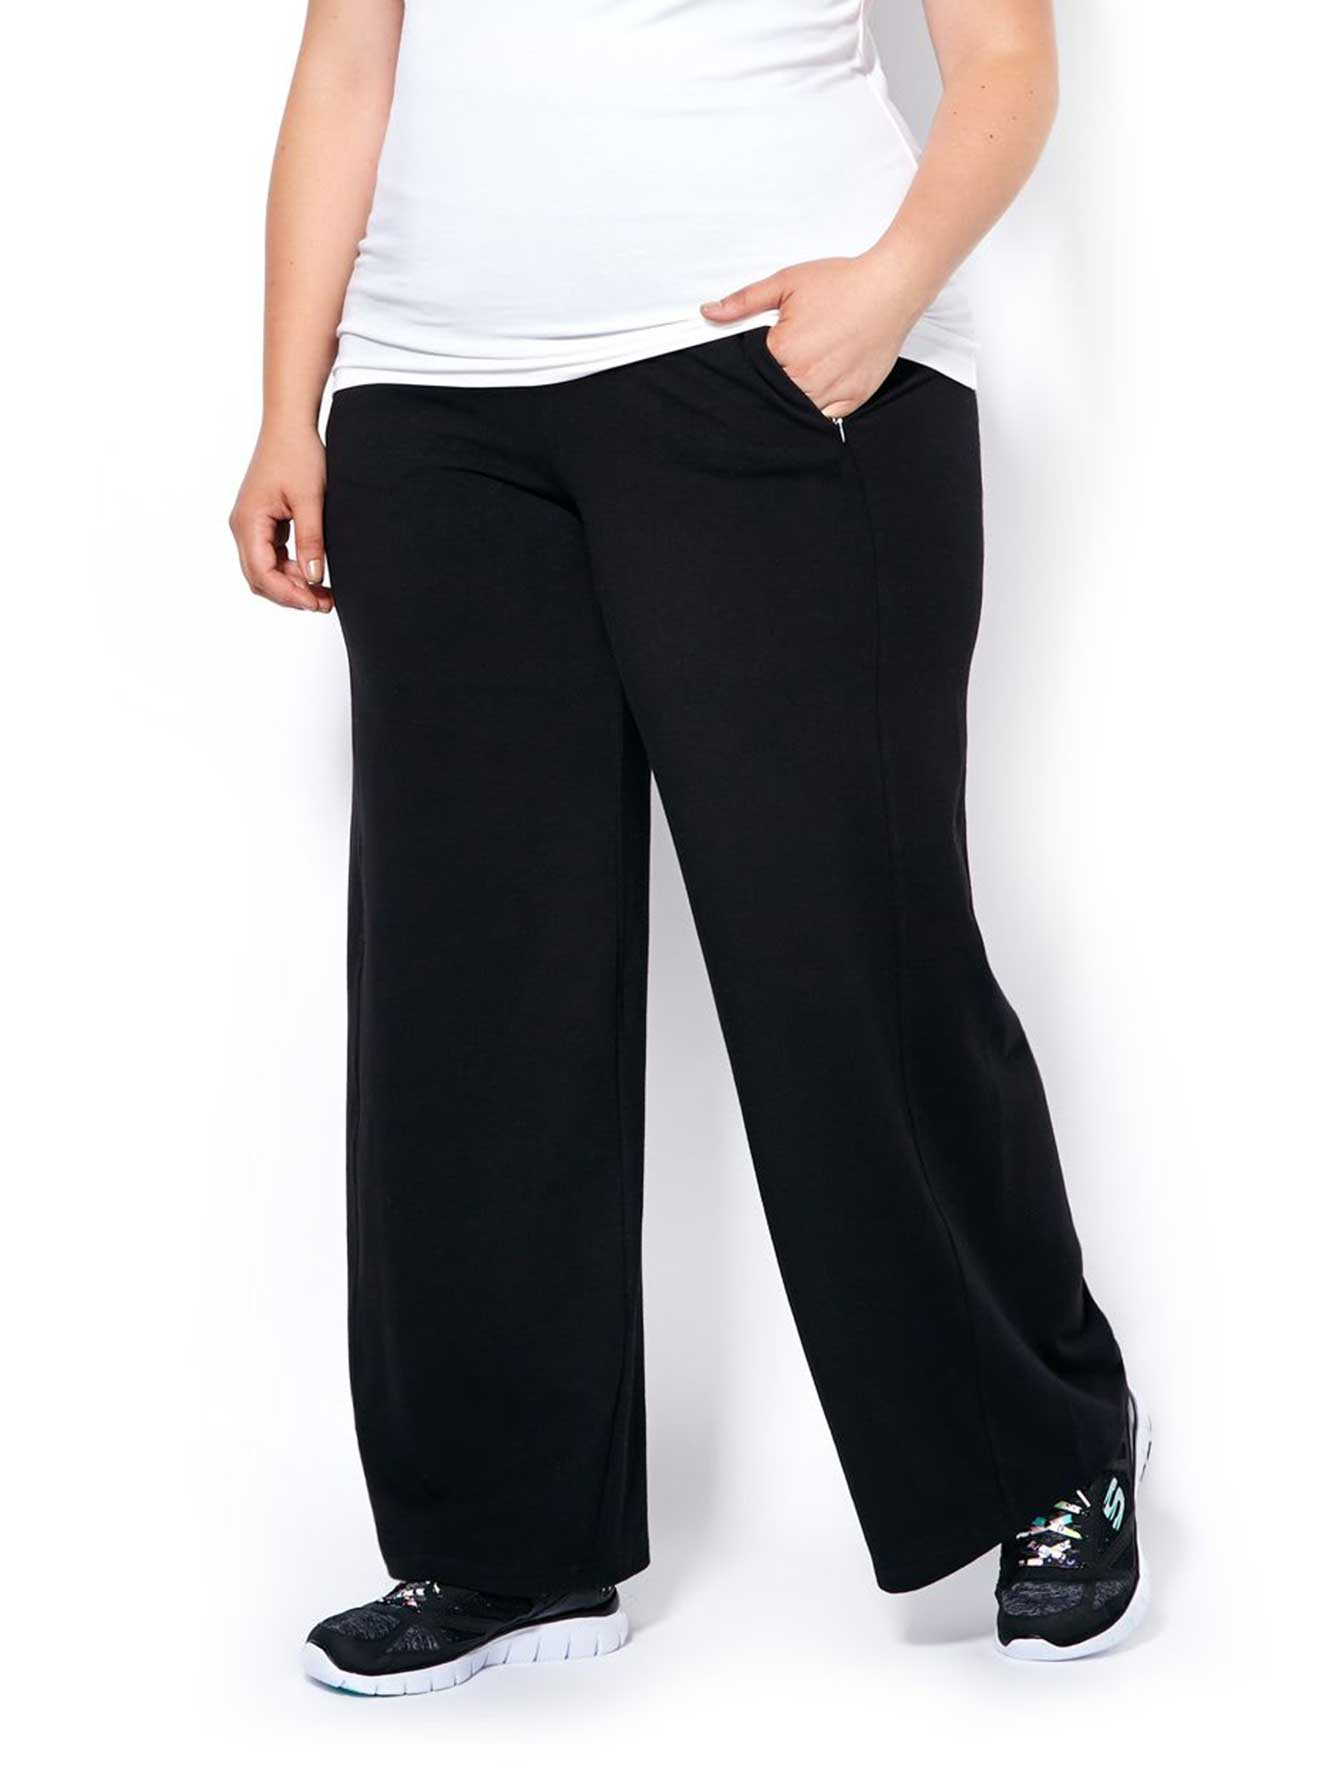 Shop Old Navy's Mid-Rise Wide-Leg Roll-Over Yoga Pants for Women: Elasticized, fold-over waistband.,Smooth, medium-weight jersey, with stretch.,Go-Dry: superior wicking keeps you comfy & dry.